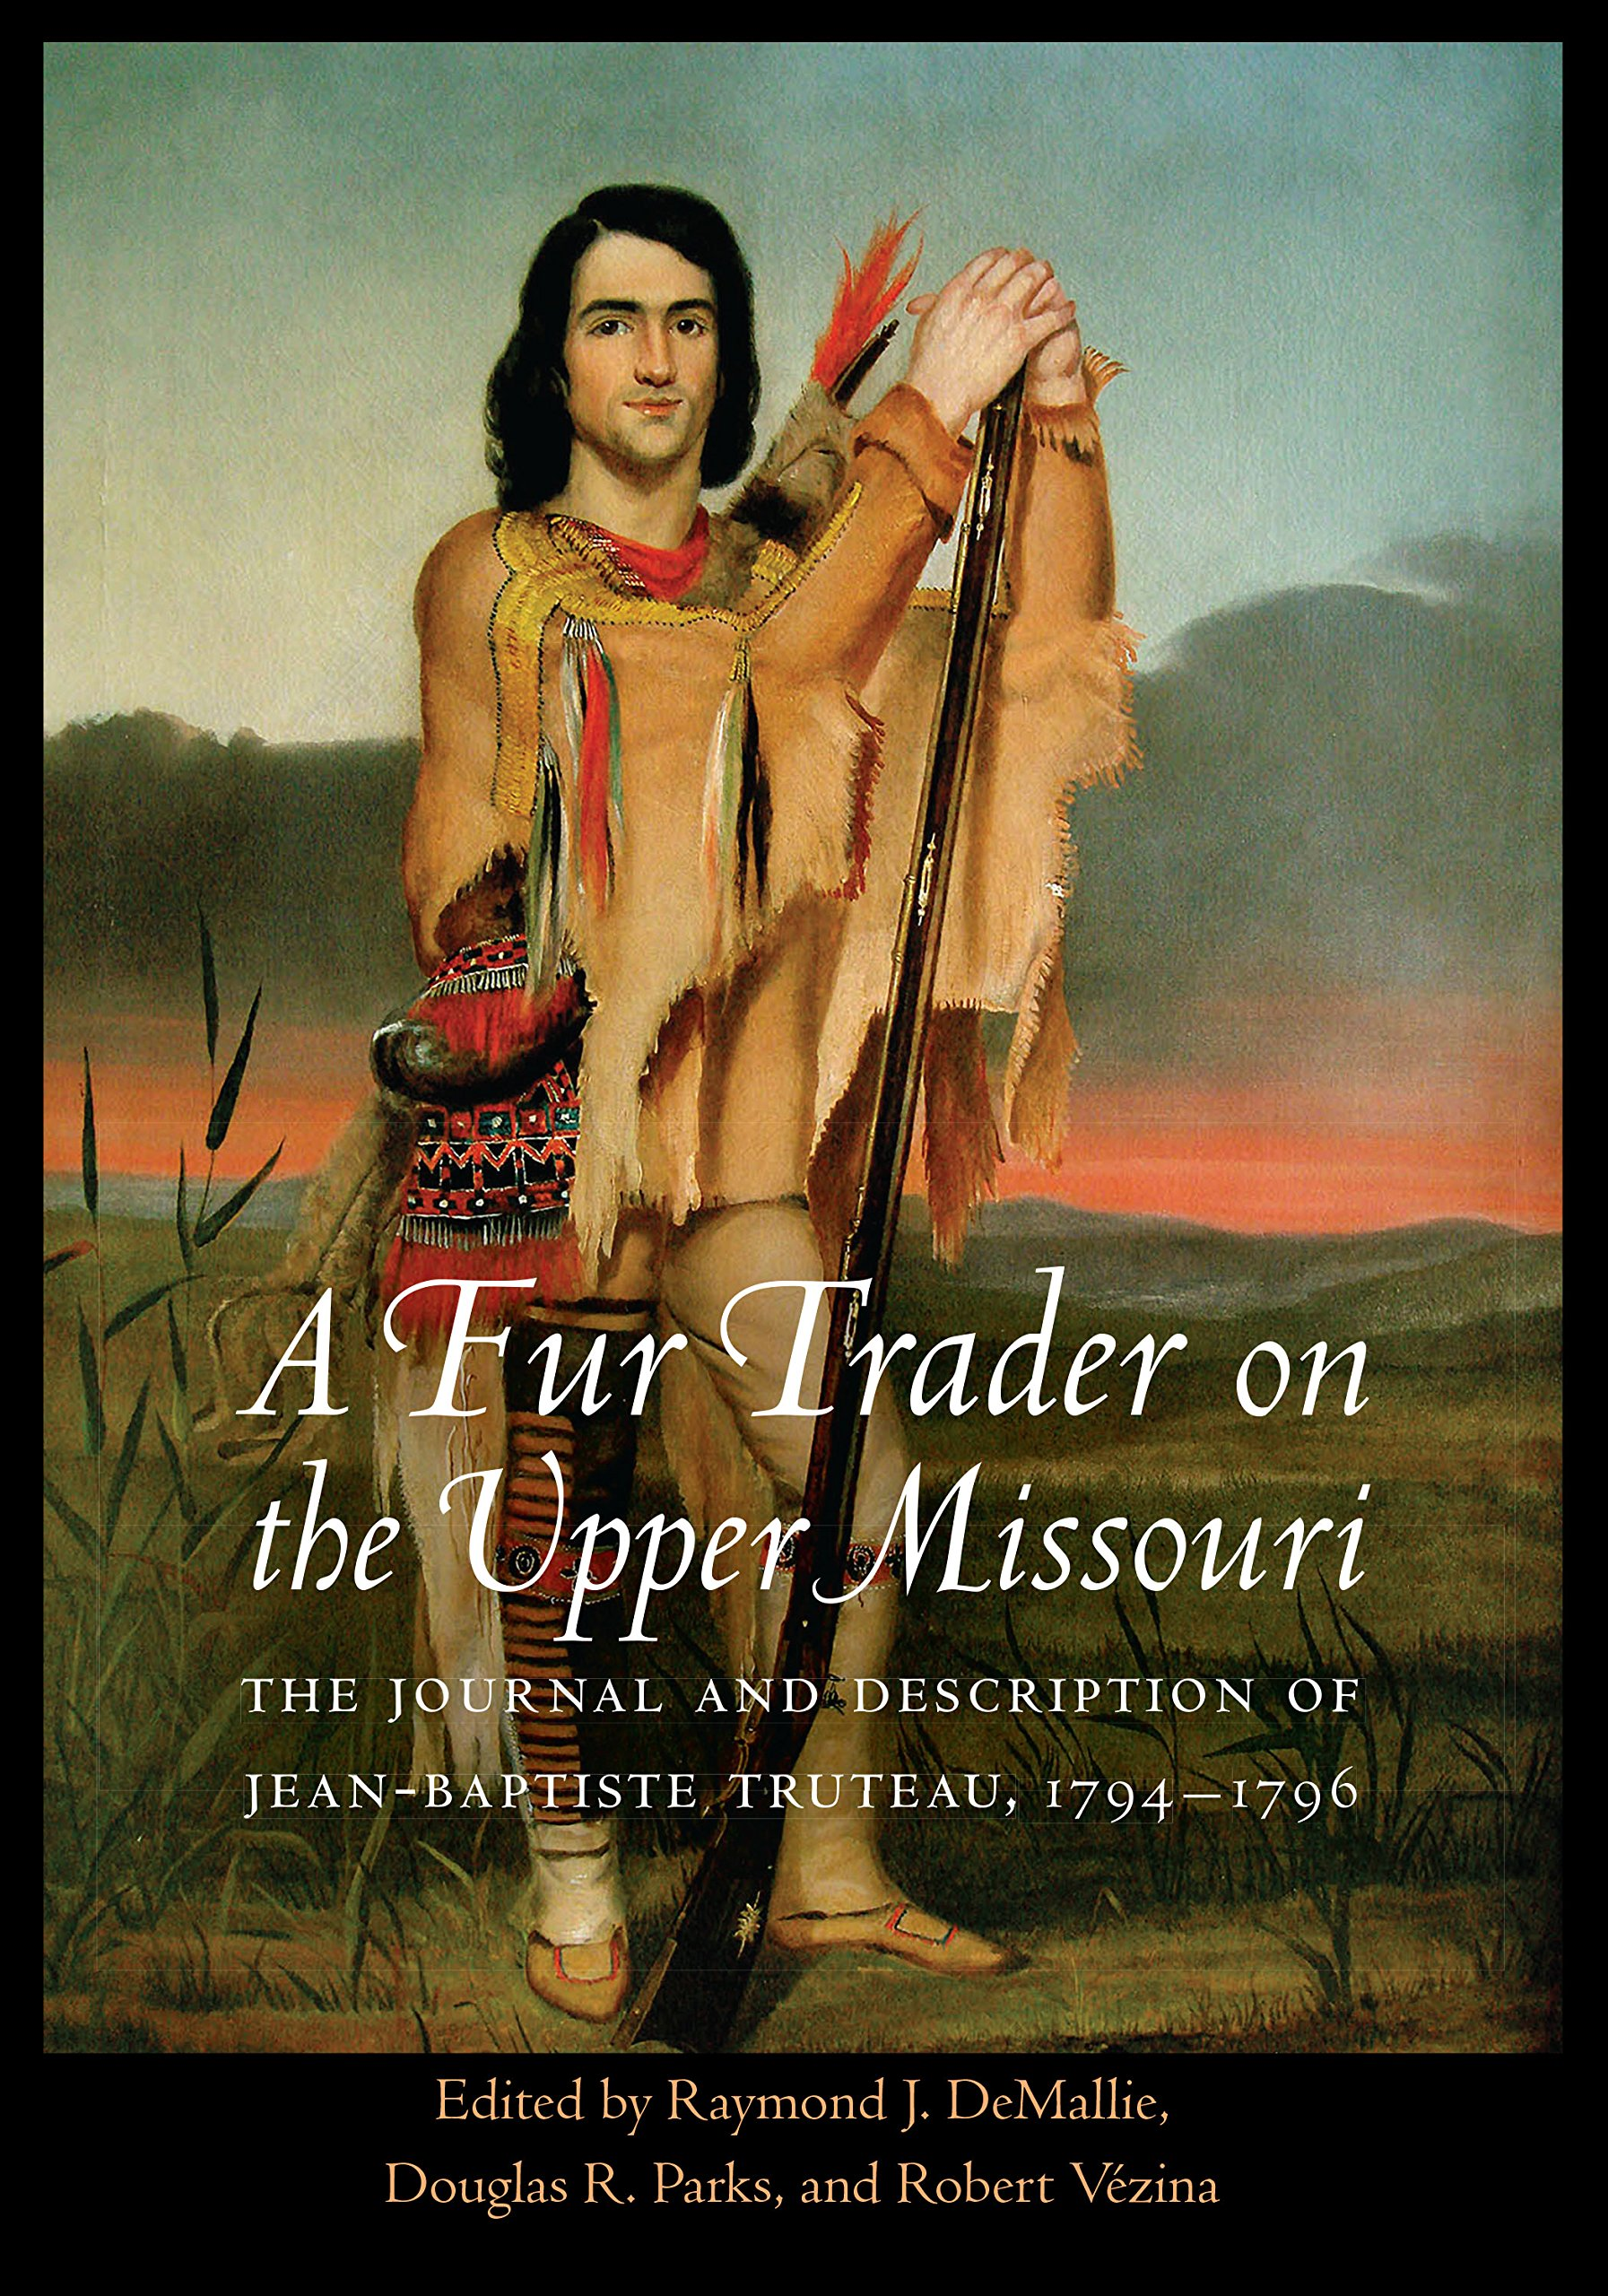 A Fur Trader on the Upper Missouri: The Journal and Description of Jean-Baptiste Truteau, 1794-1796 (Studies in the Anthropology of North American Indians) by University of Nebraska Press